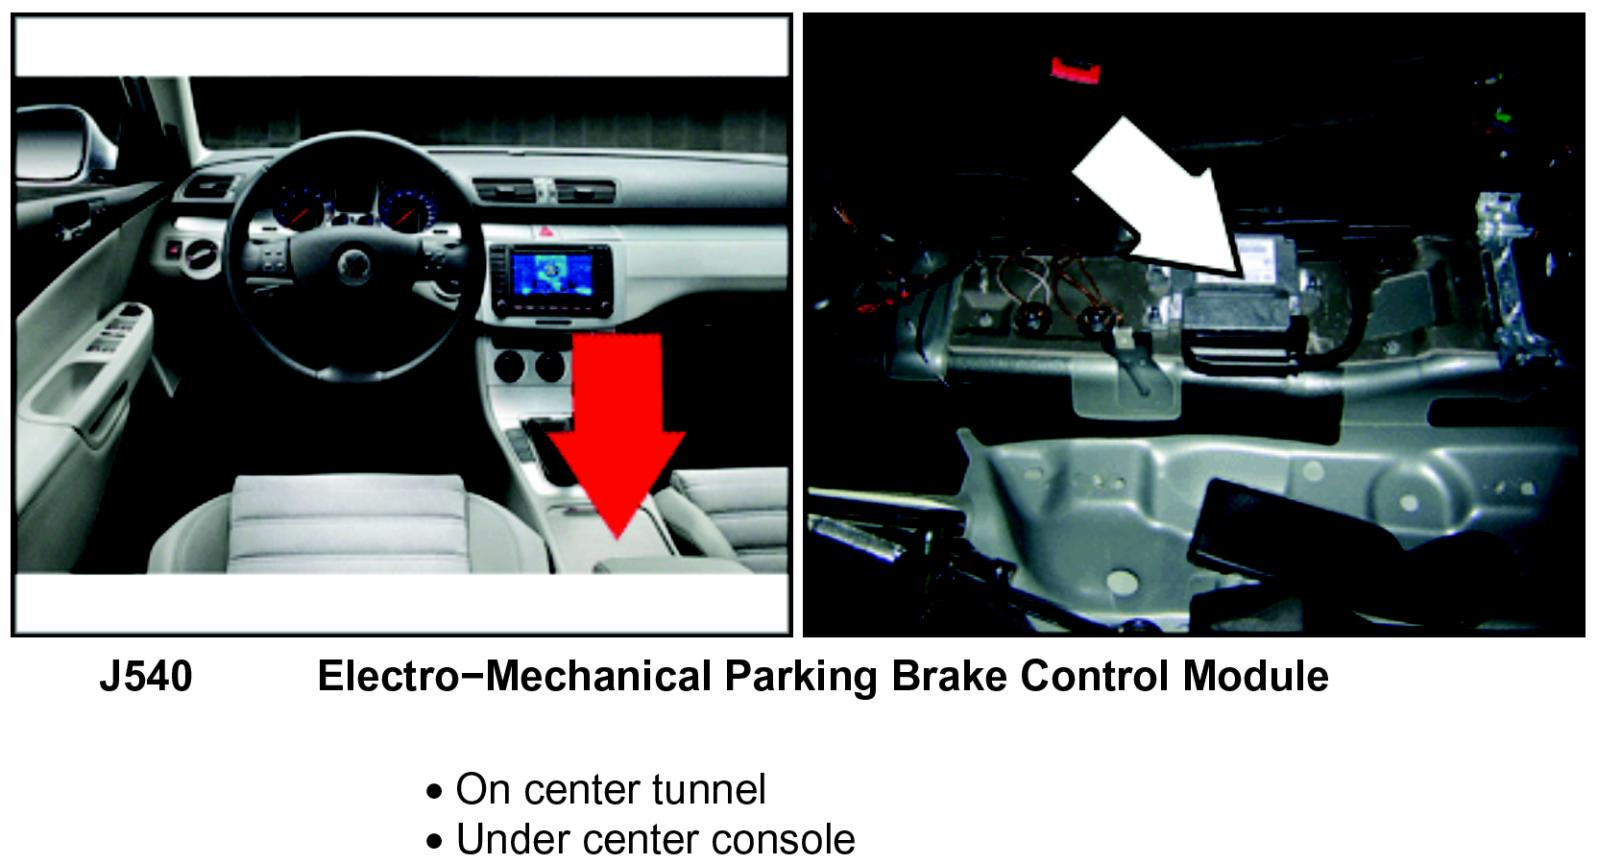 Advanced Features Of The Holley Sniper Efi Unit further 7hxp1 Ford F 350 Ecm Located 2008 F350 furthermore 6uyeq Volkswagen Passat 2 0t Getting Error Codes P2004 additionally Ford super duty ambulance besides Item129198107. on ford diagram